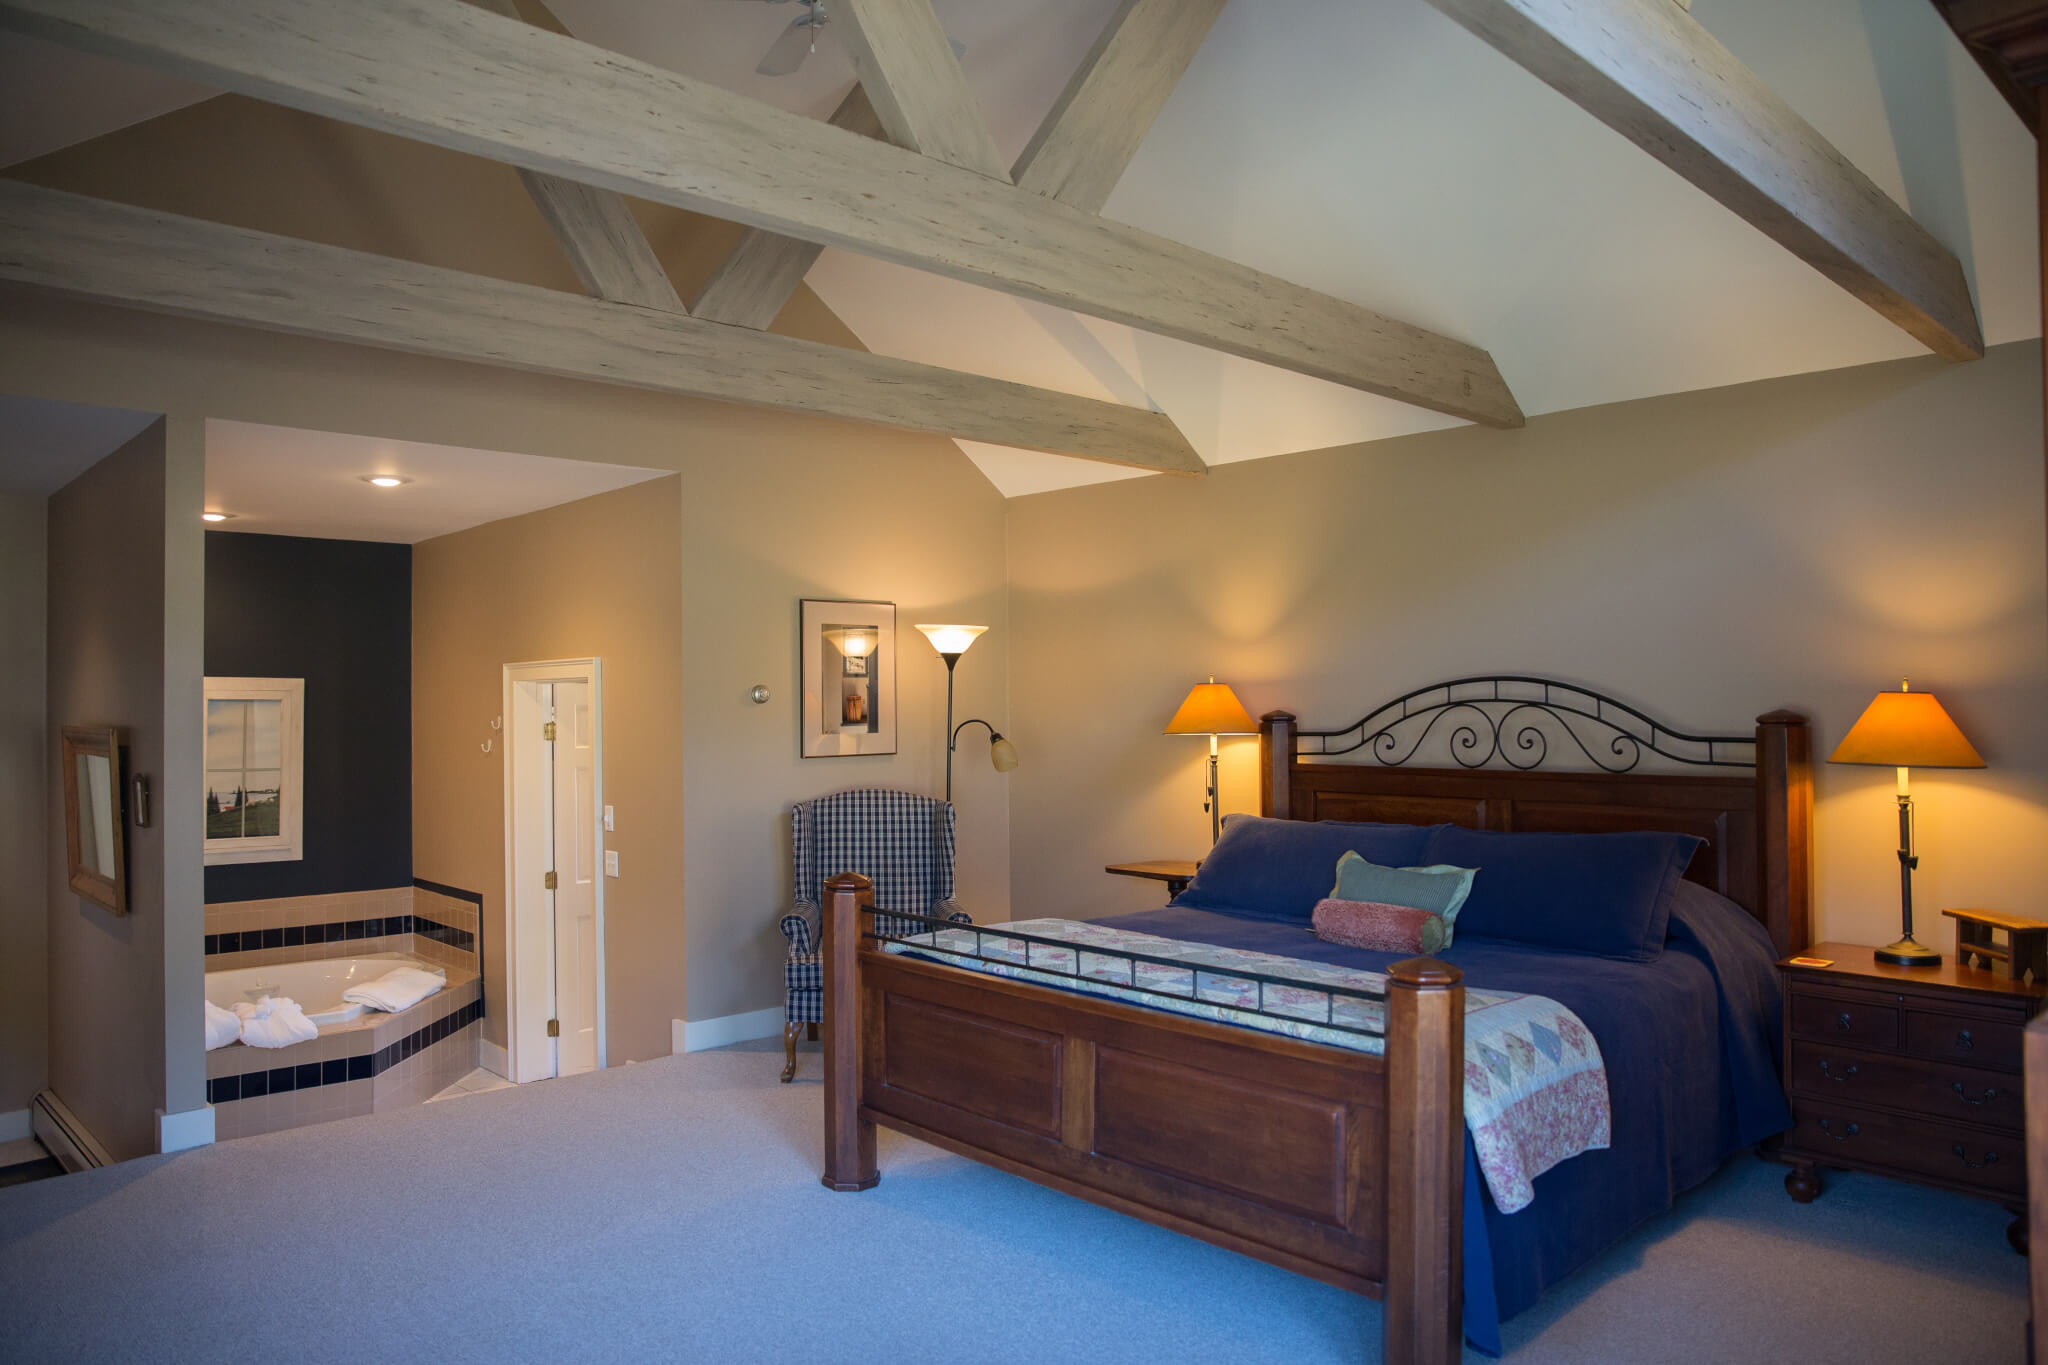 Ben Flint's room with king-sized bed, comfortable seating, and an in-room jetted tub.